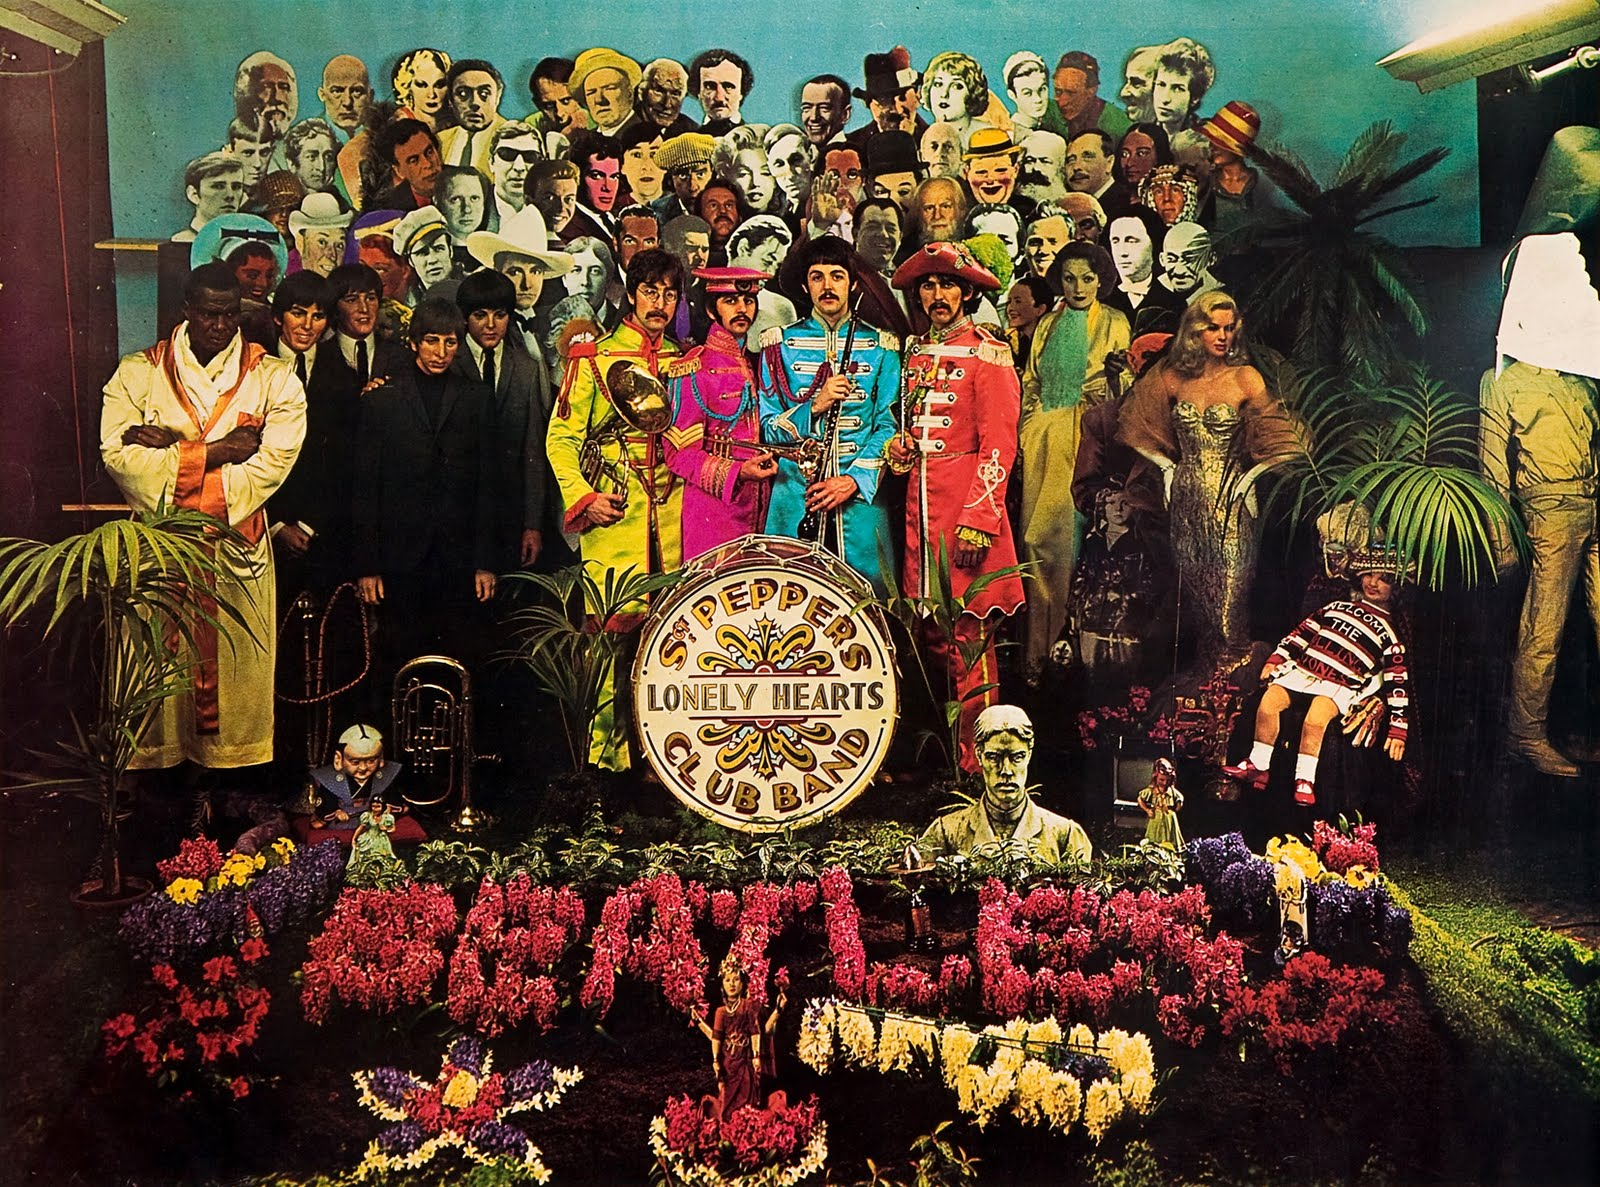 Sgt_Peppers_Lonely_Hearts_Club_Band_inteira